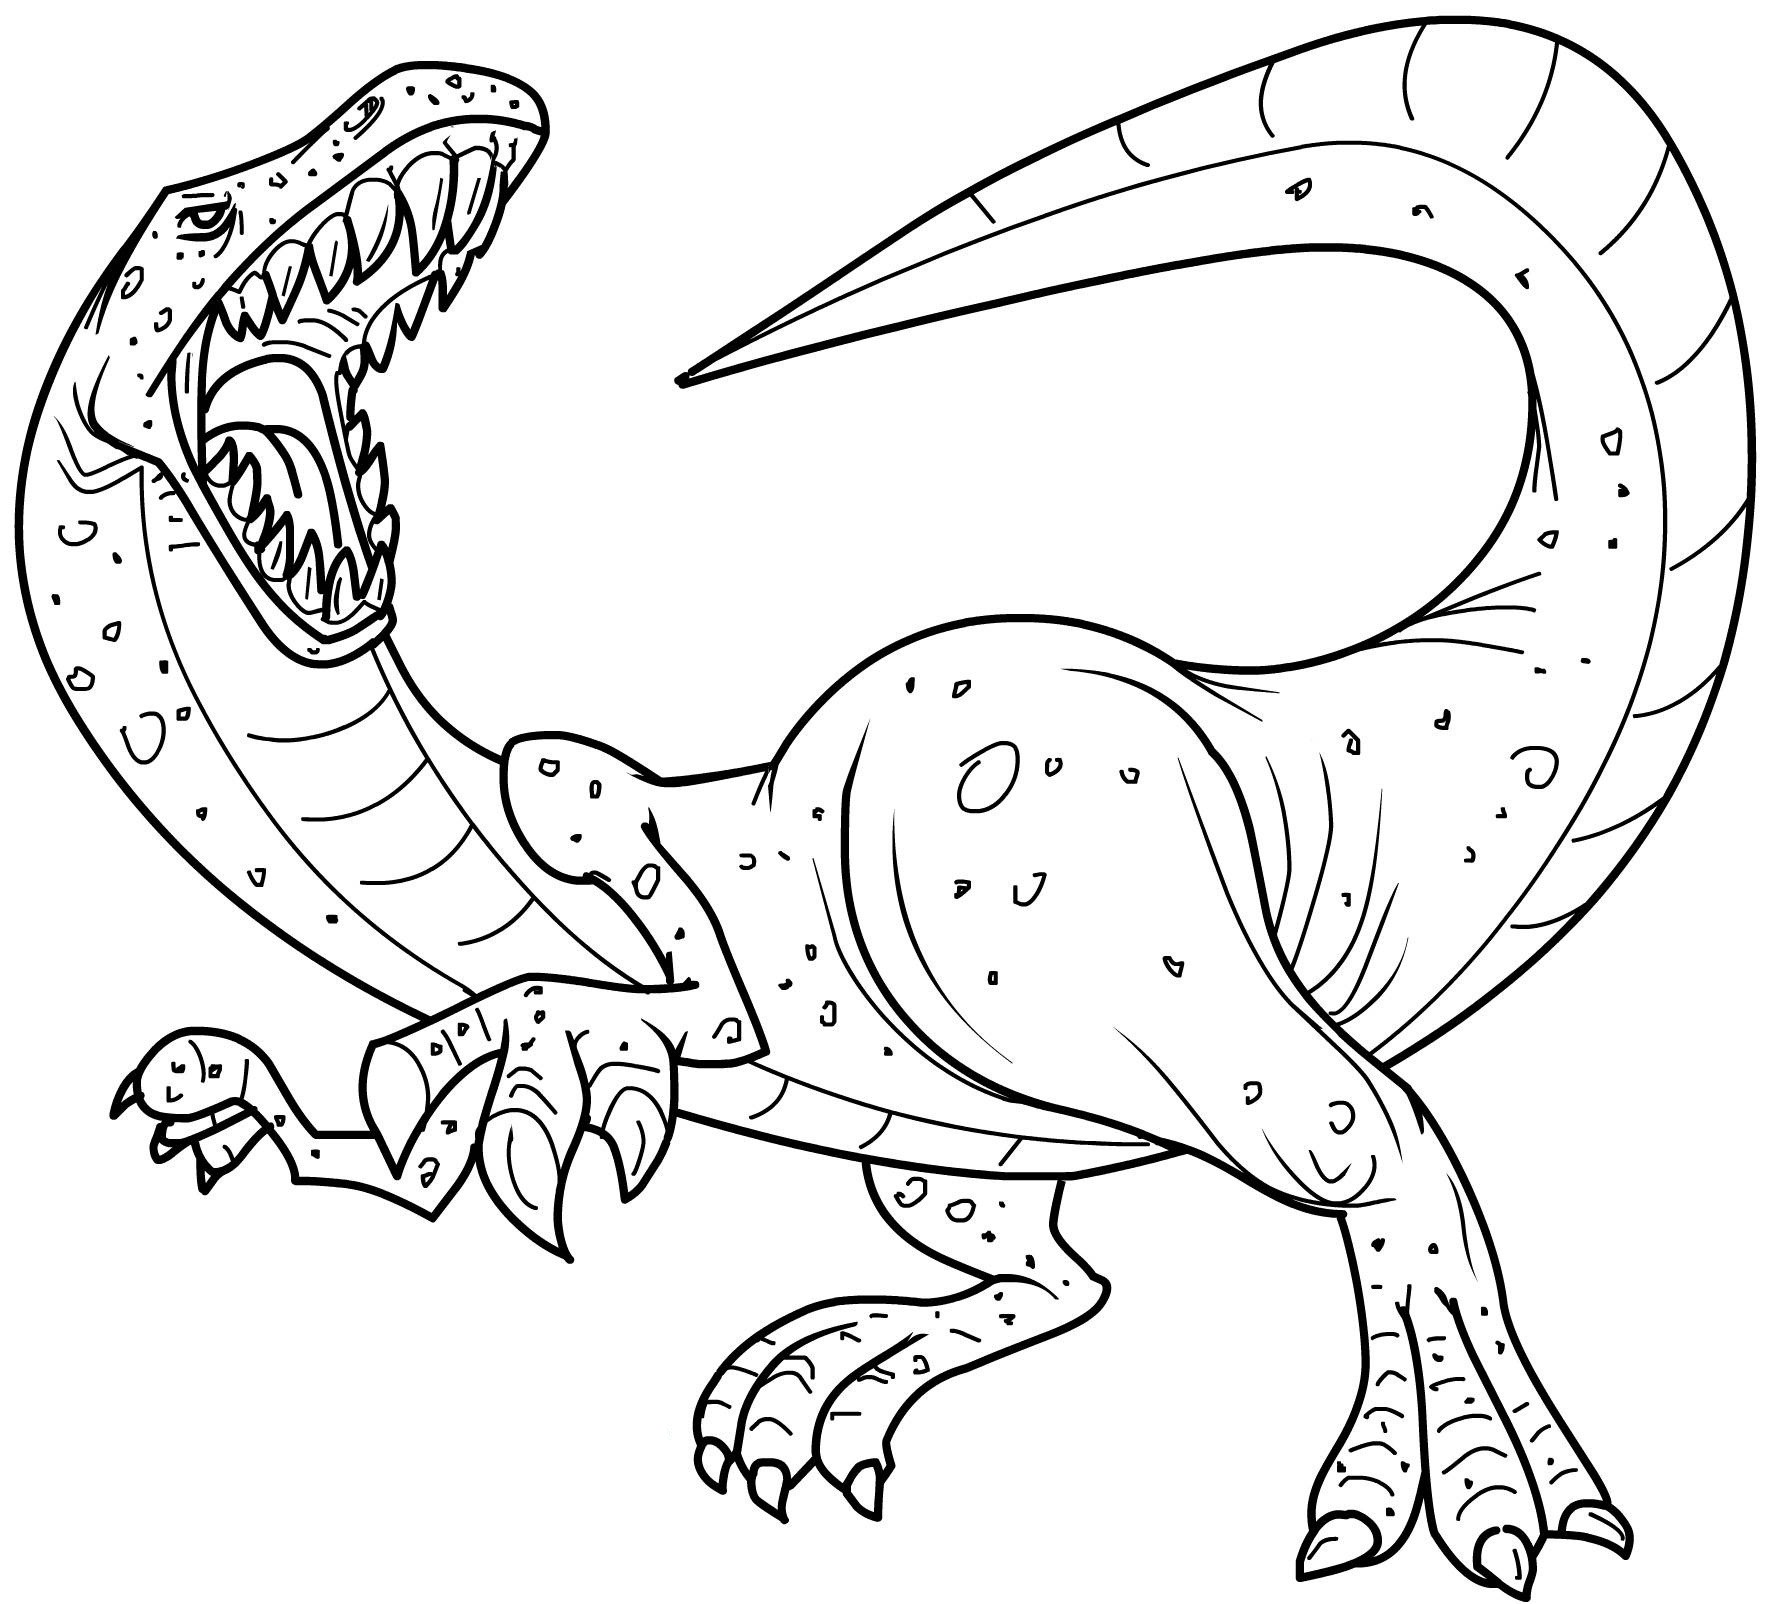 Free coloring in pages - Dinosaurs Coloring Pages Free Printables